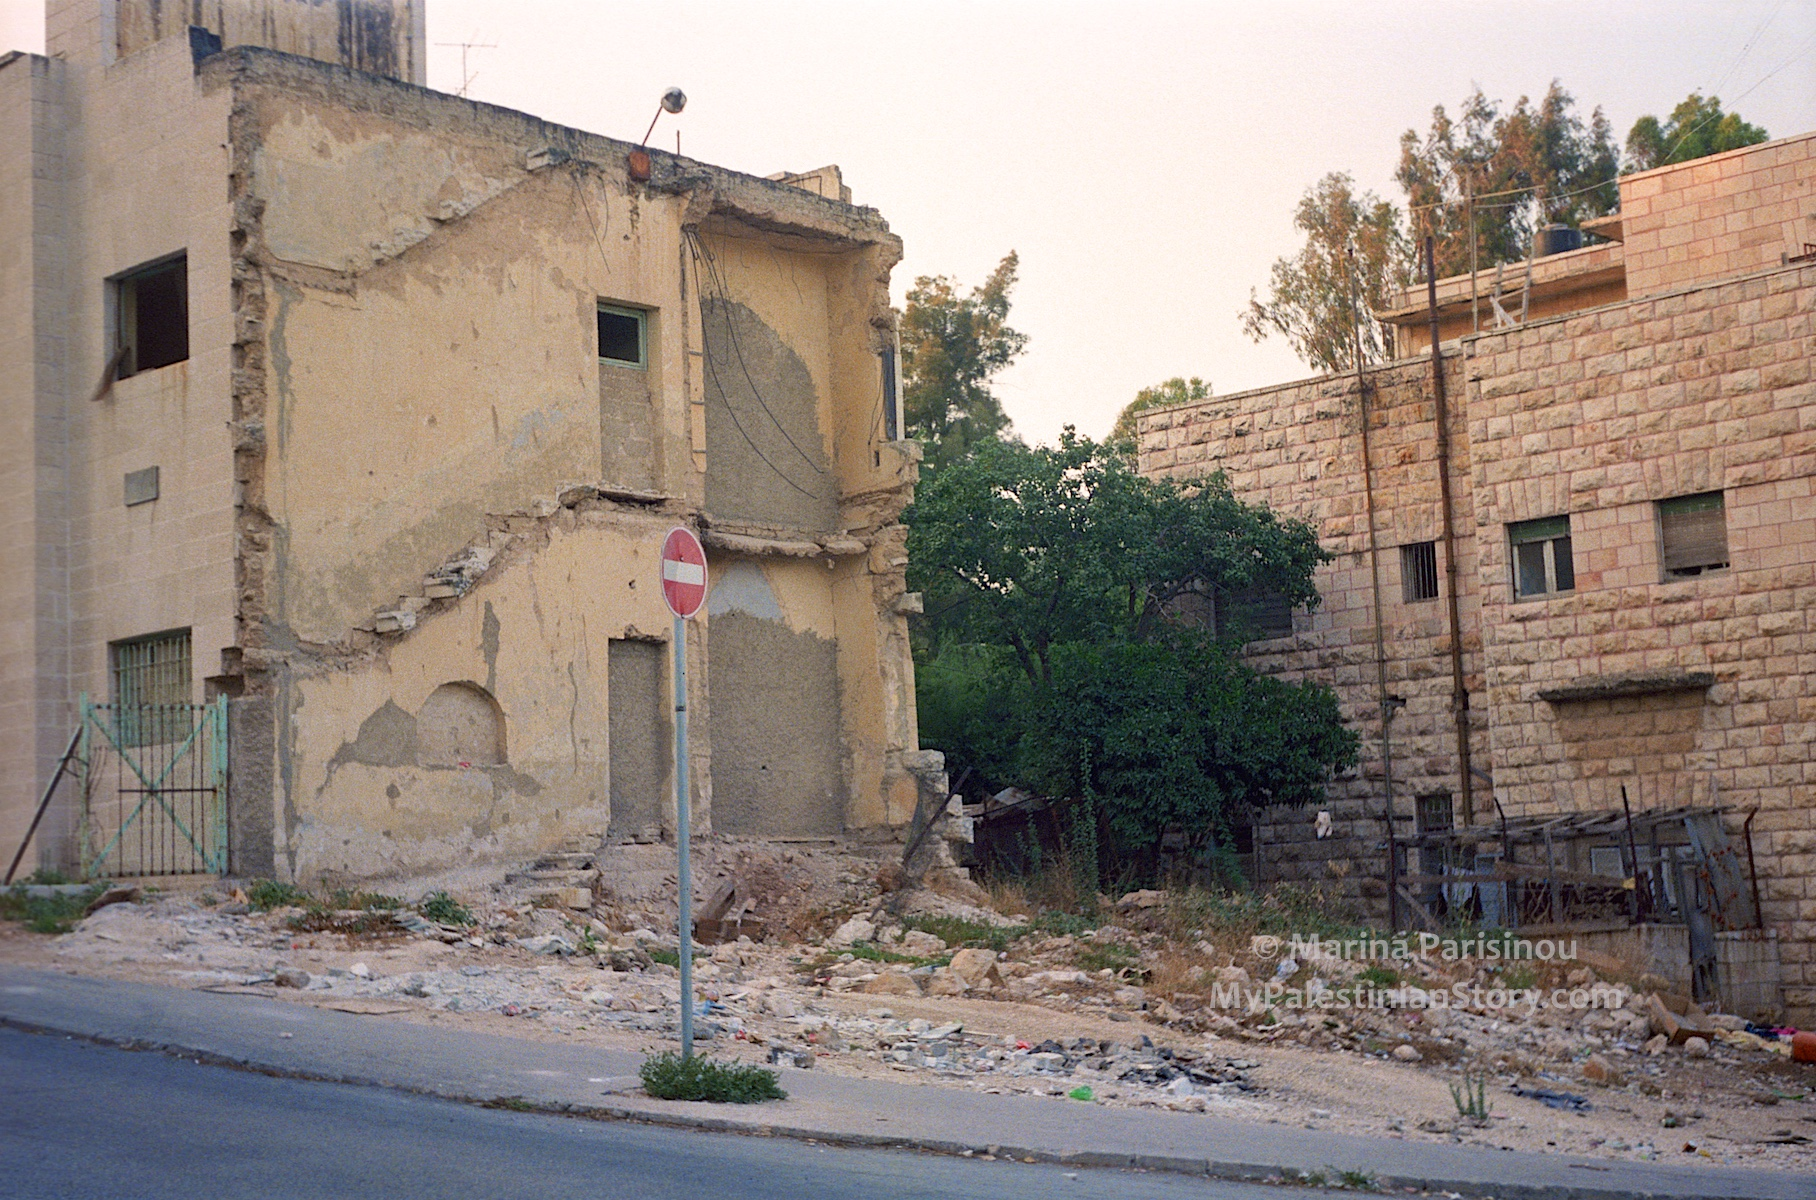 Remains of the Semiramis Hotel, 1986